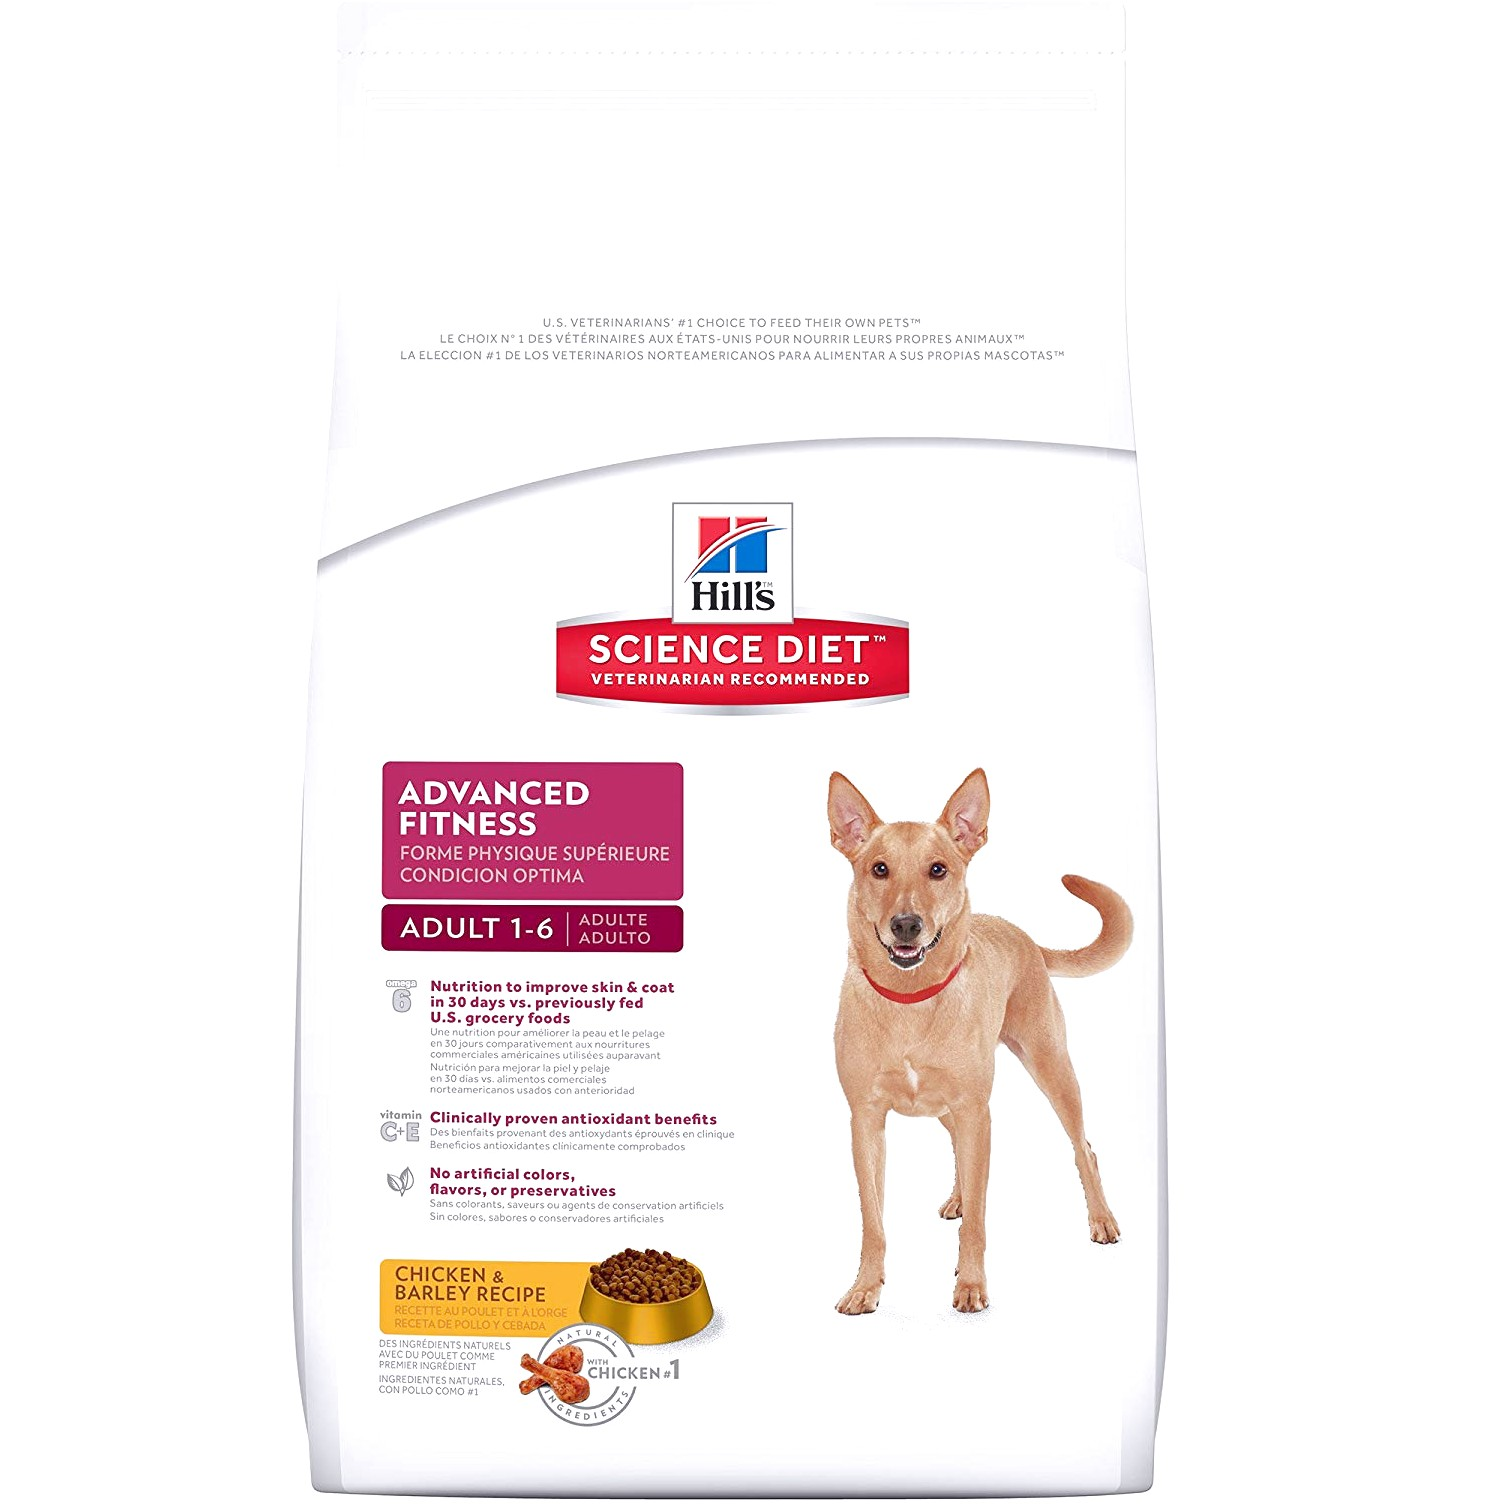 Is Science Diet A Good Dog Food